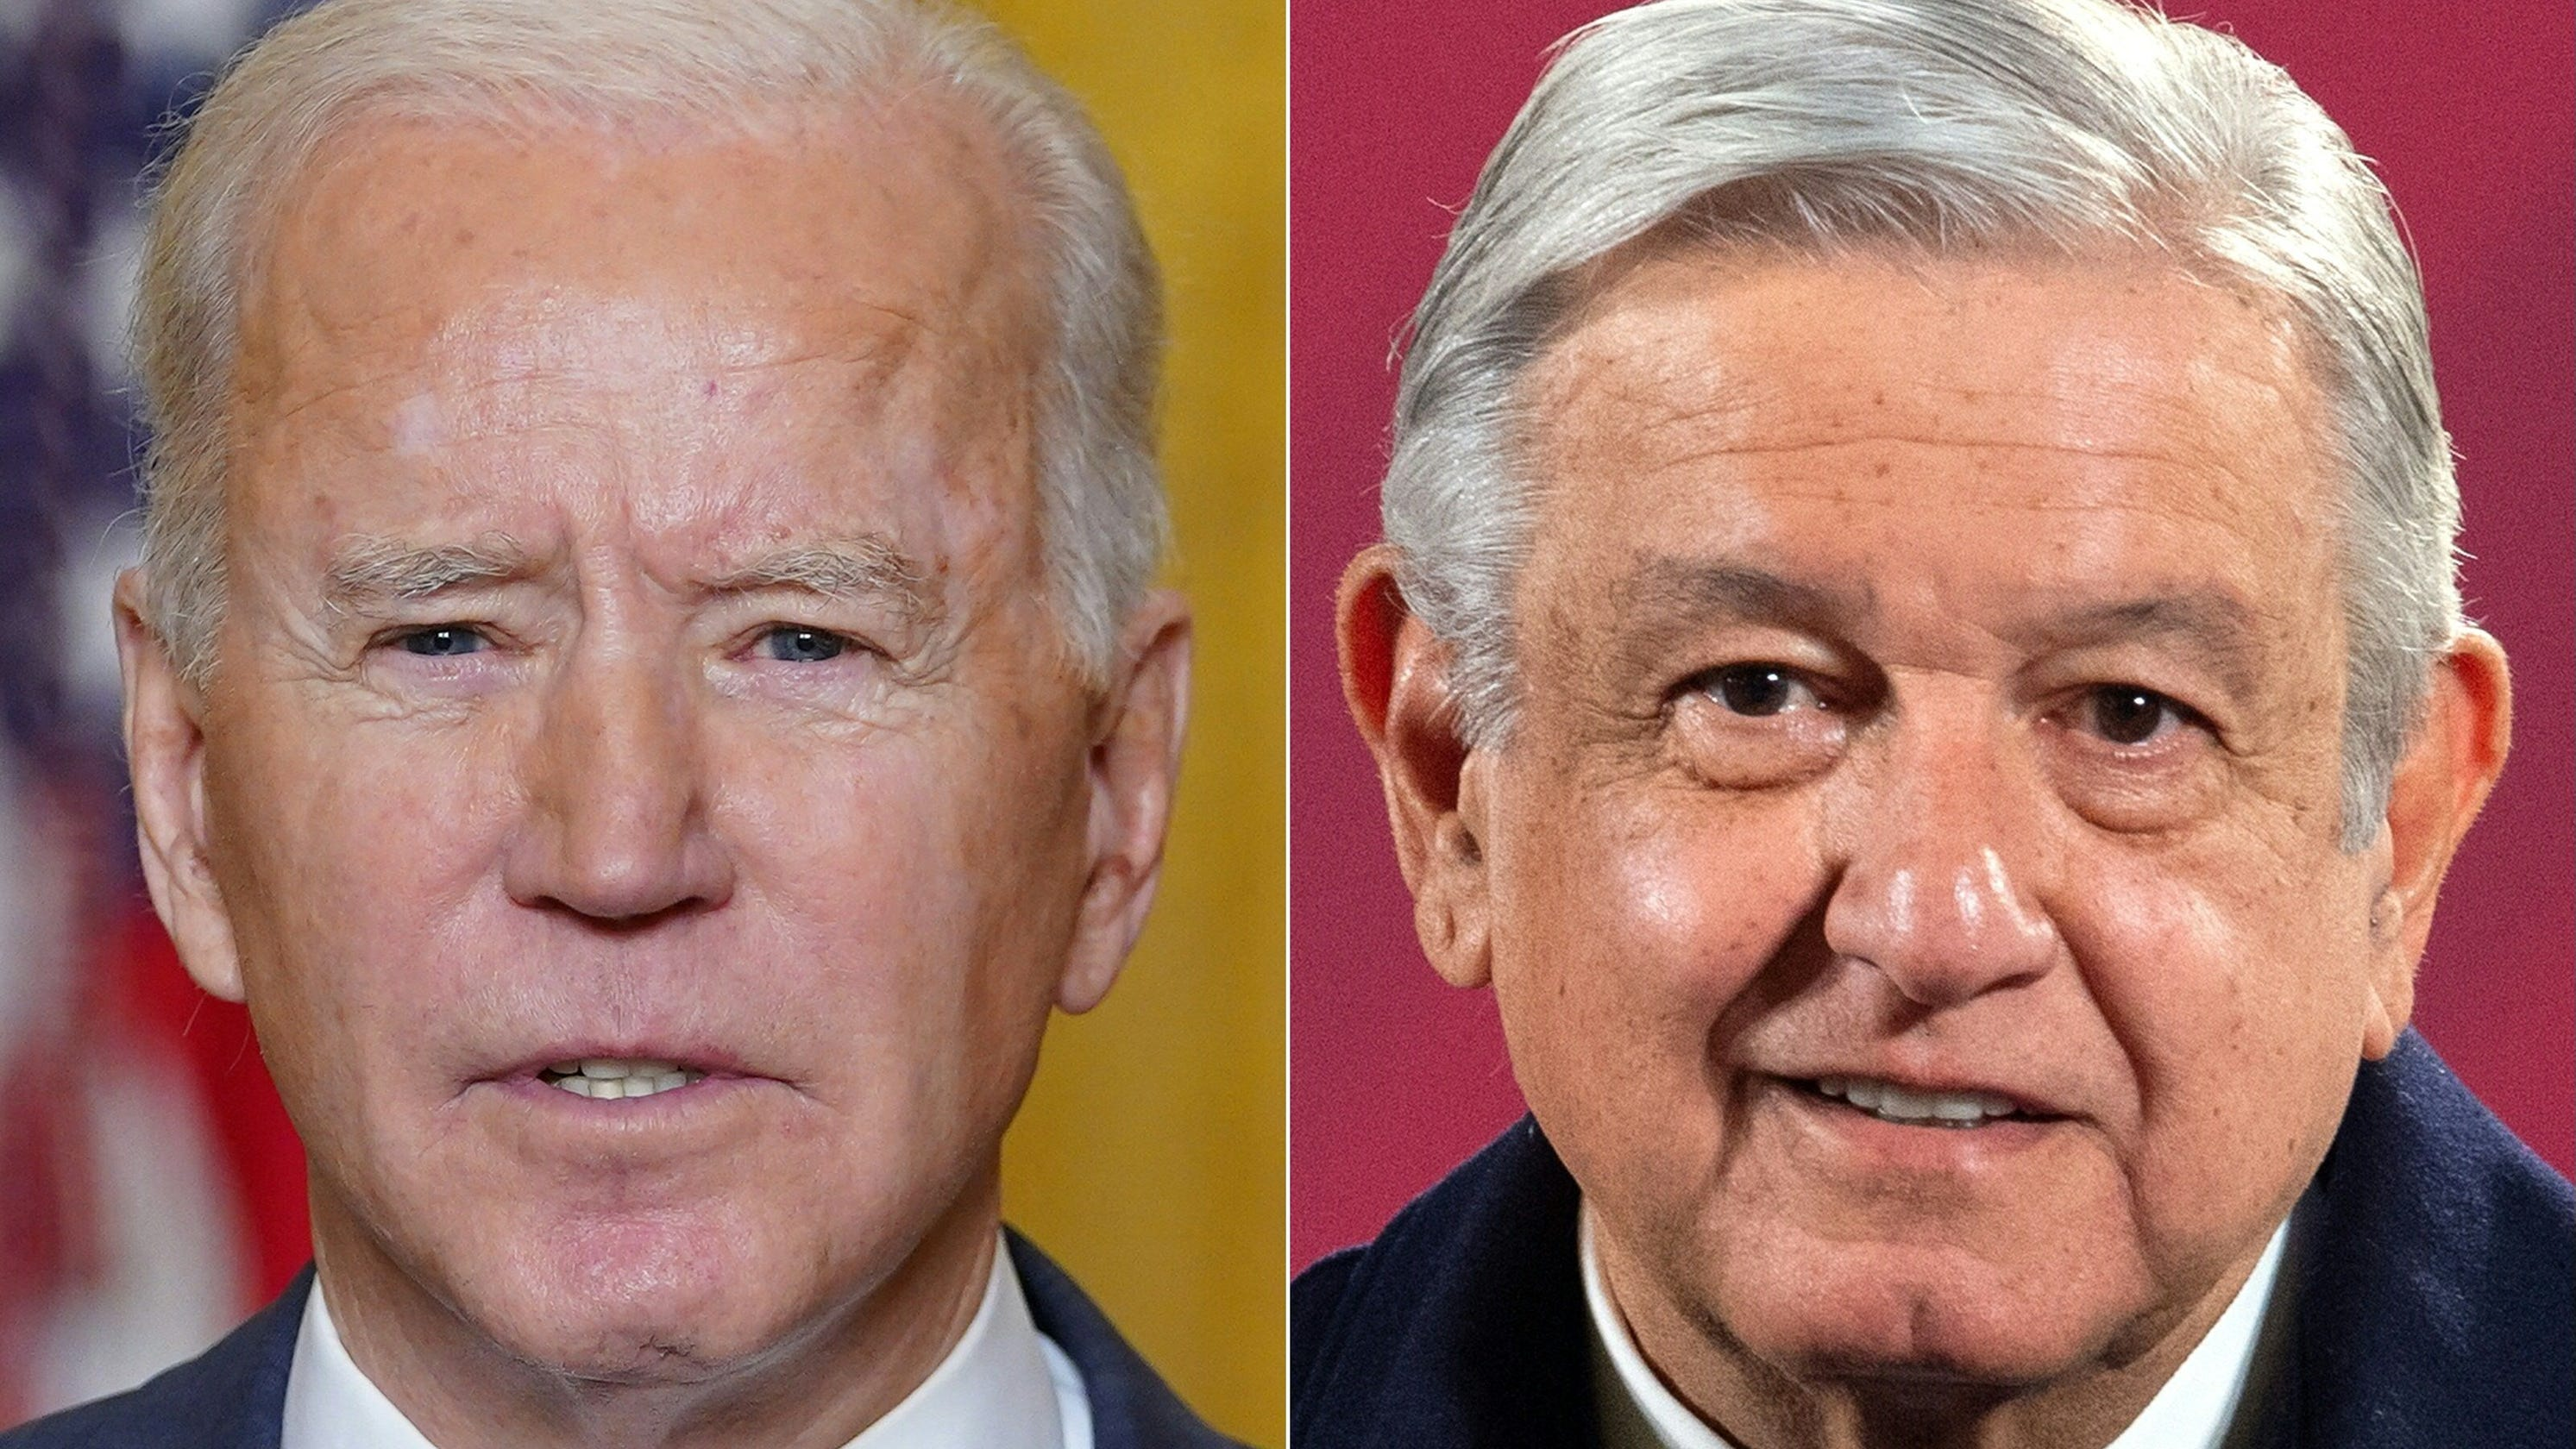 Biden administration may let families separated at Mexican border reunite in US